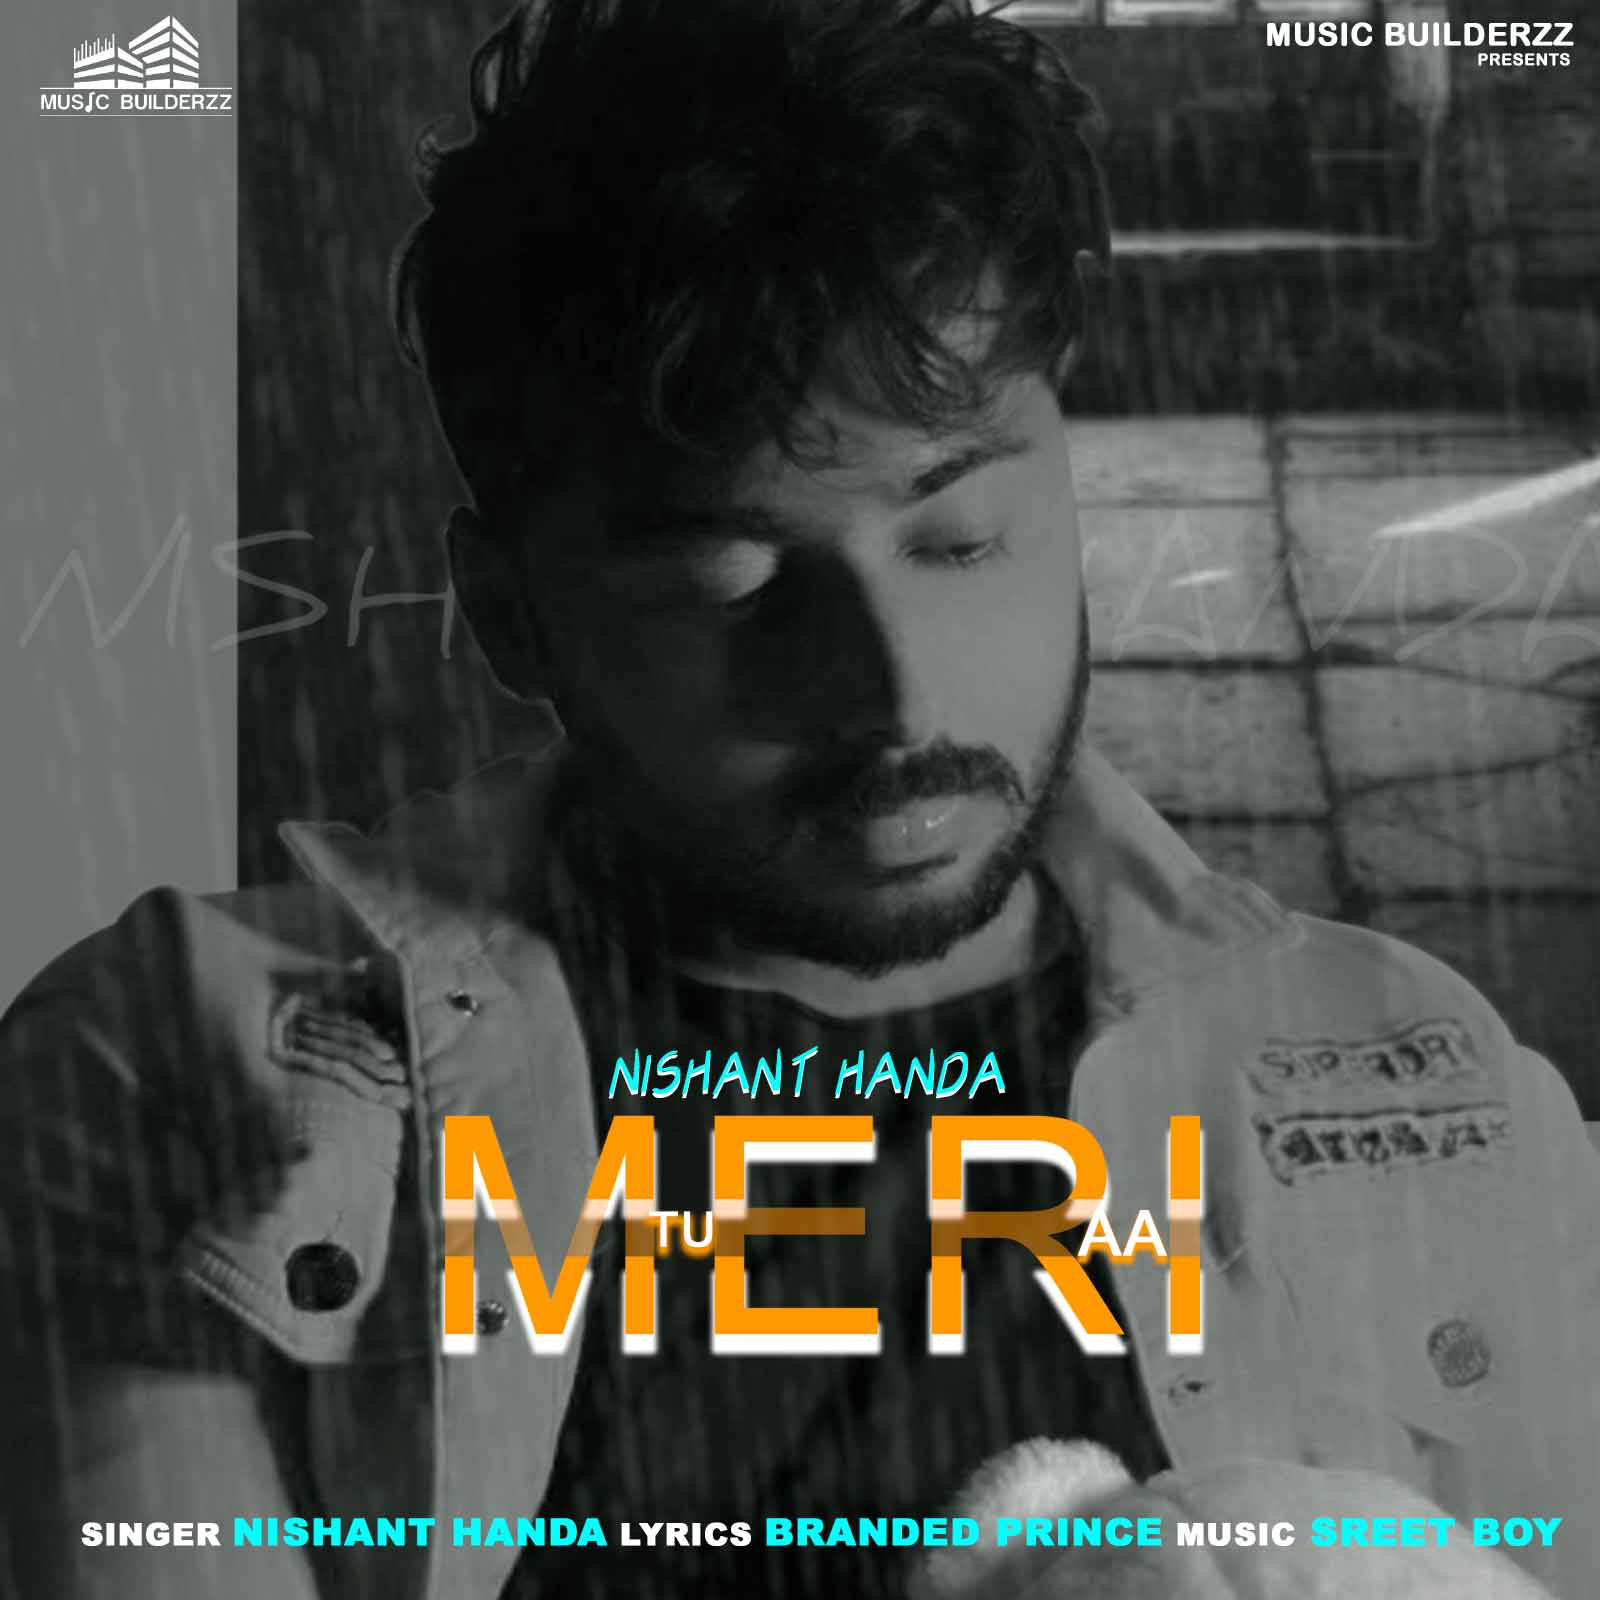 Tu Meri aa Nishant Handa Download Mp3 Song